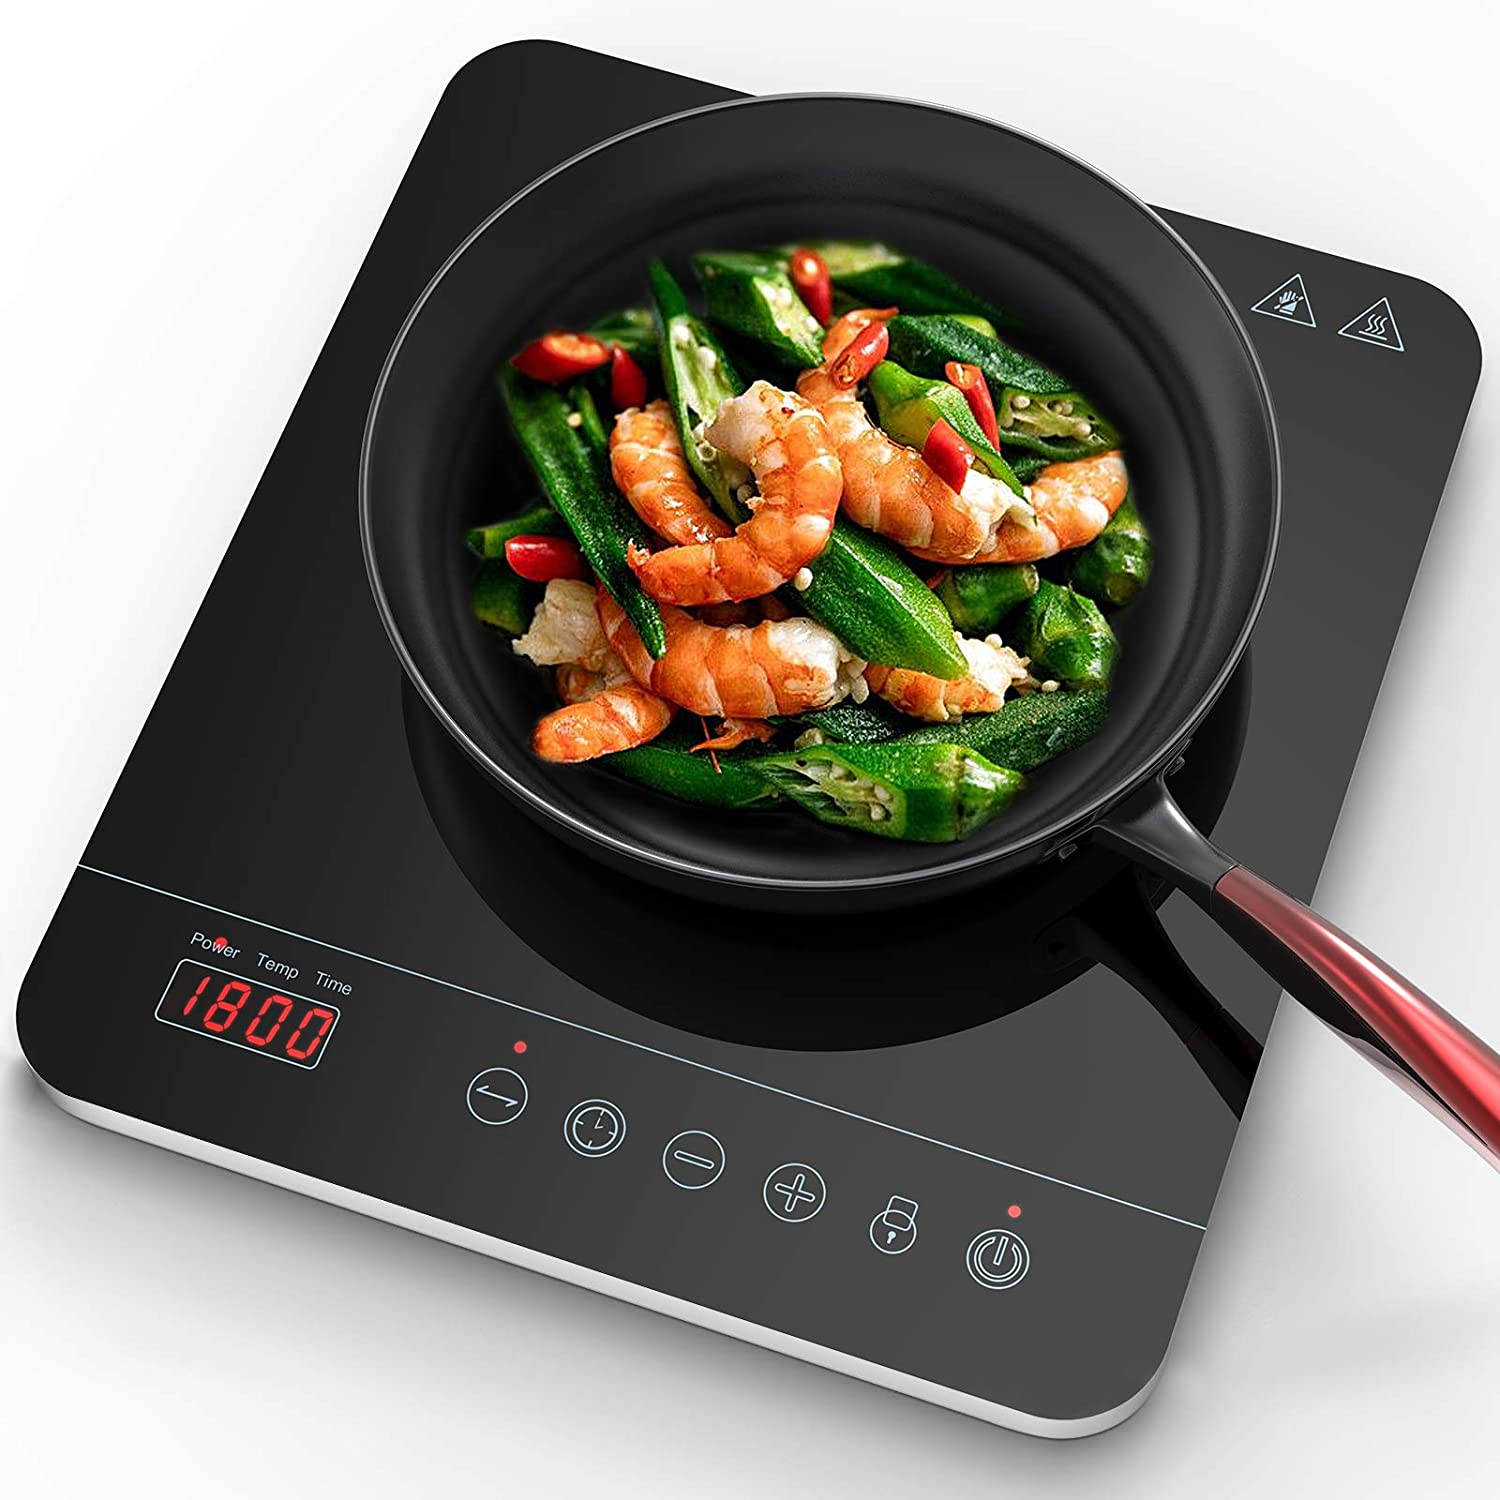 Aobosi induction Hob, Induction Cooker Portable, Ceramic Glass Plate with LED Display Electric Hob Portable, Sensor Touch Control, Timer,1800W